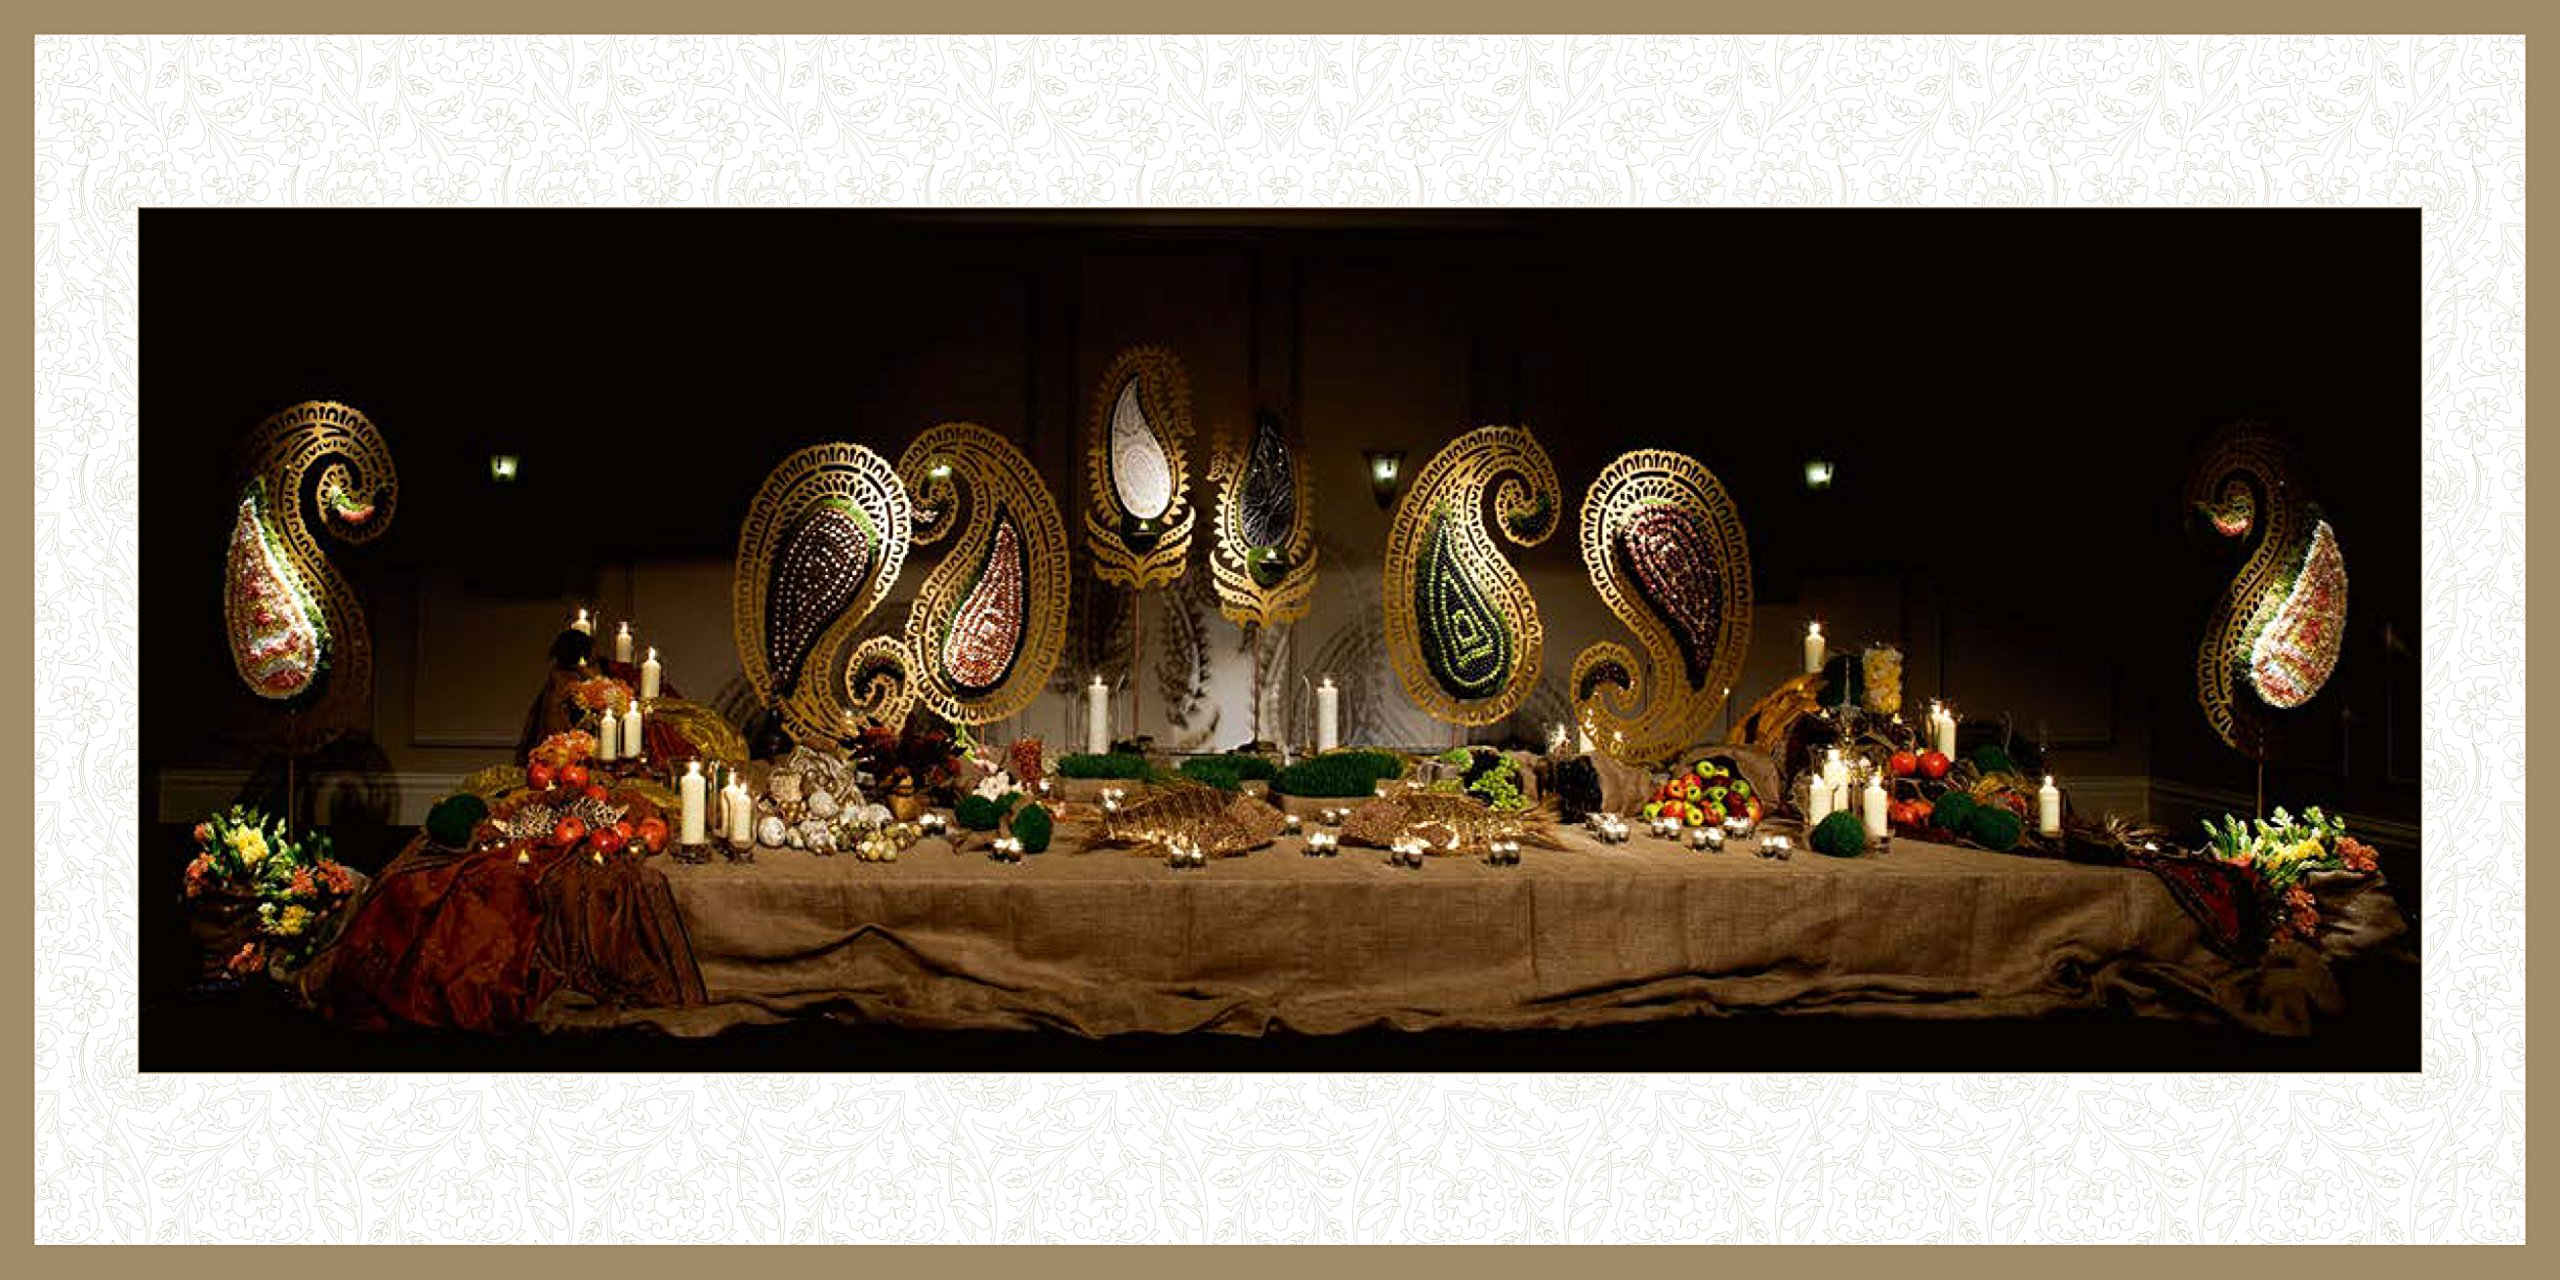 Sofreh: The Art of Persian Celebration